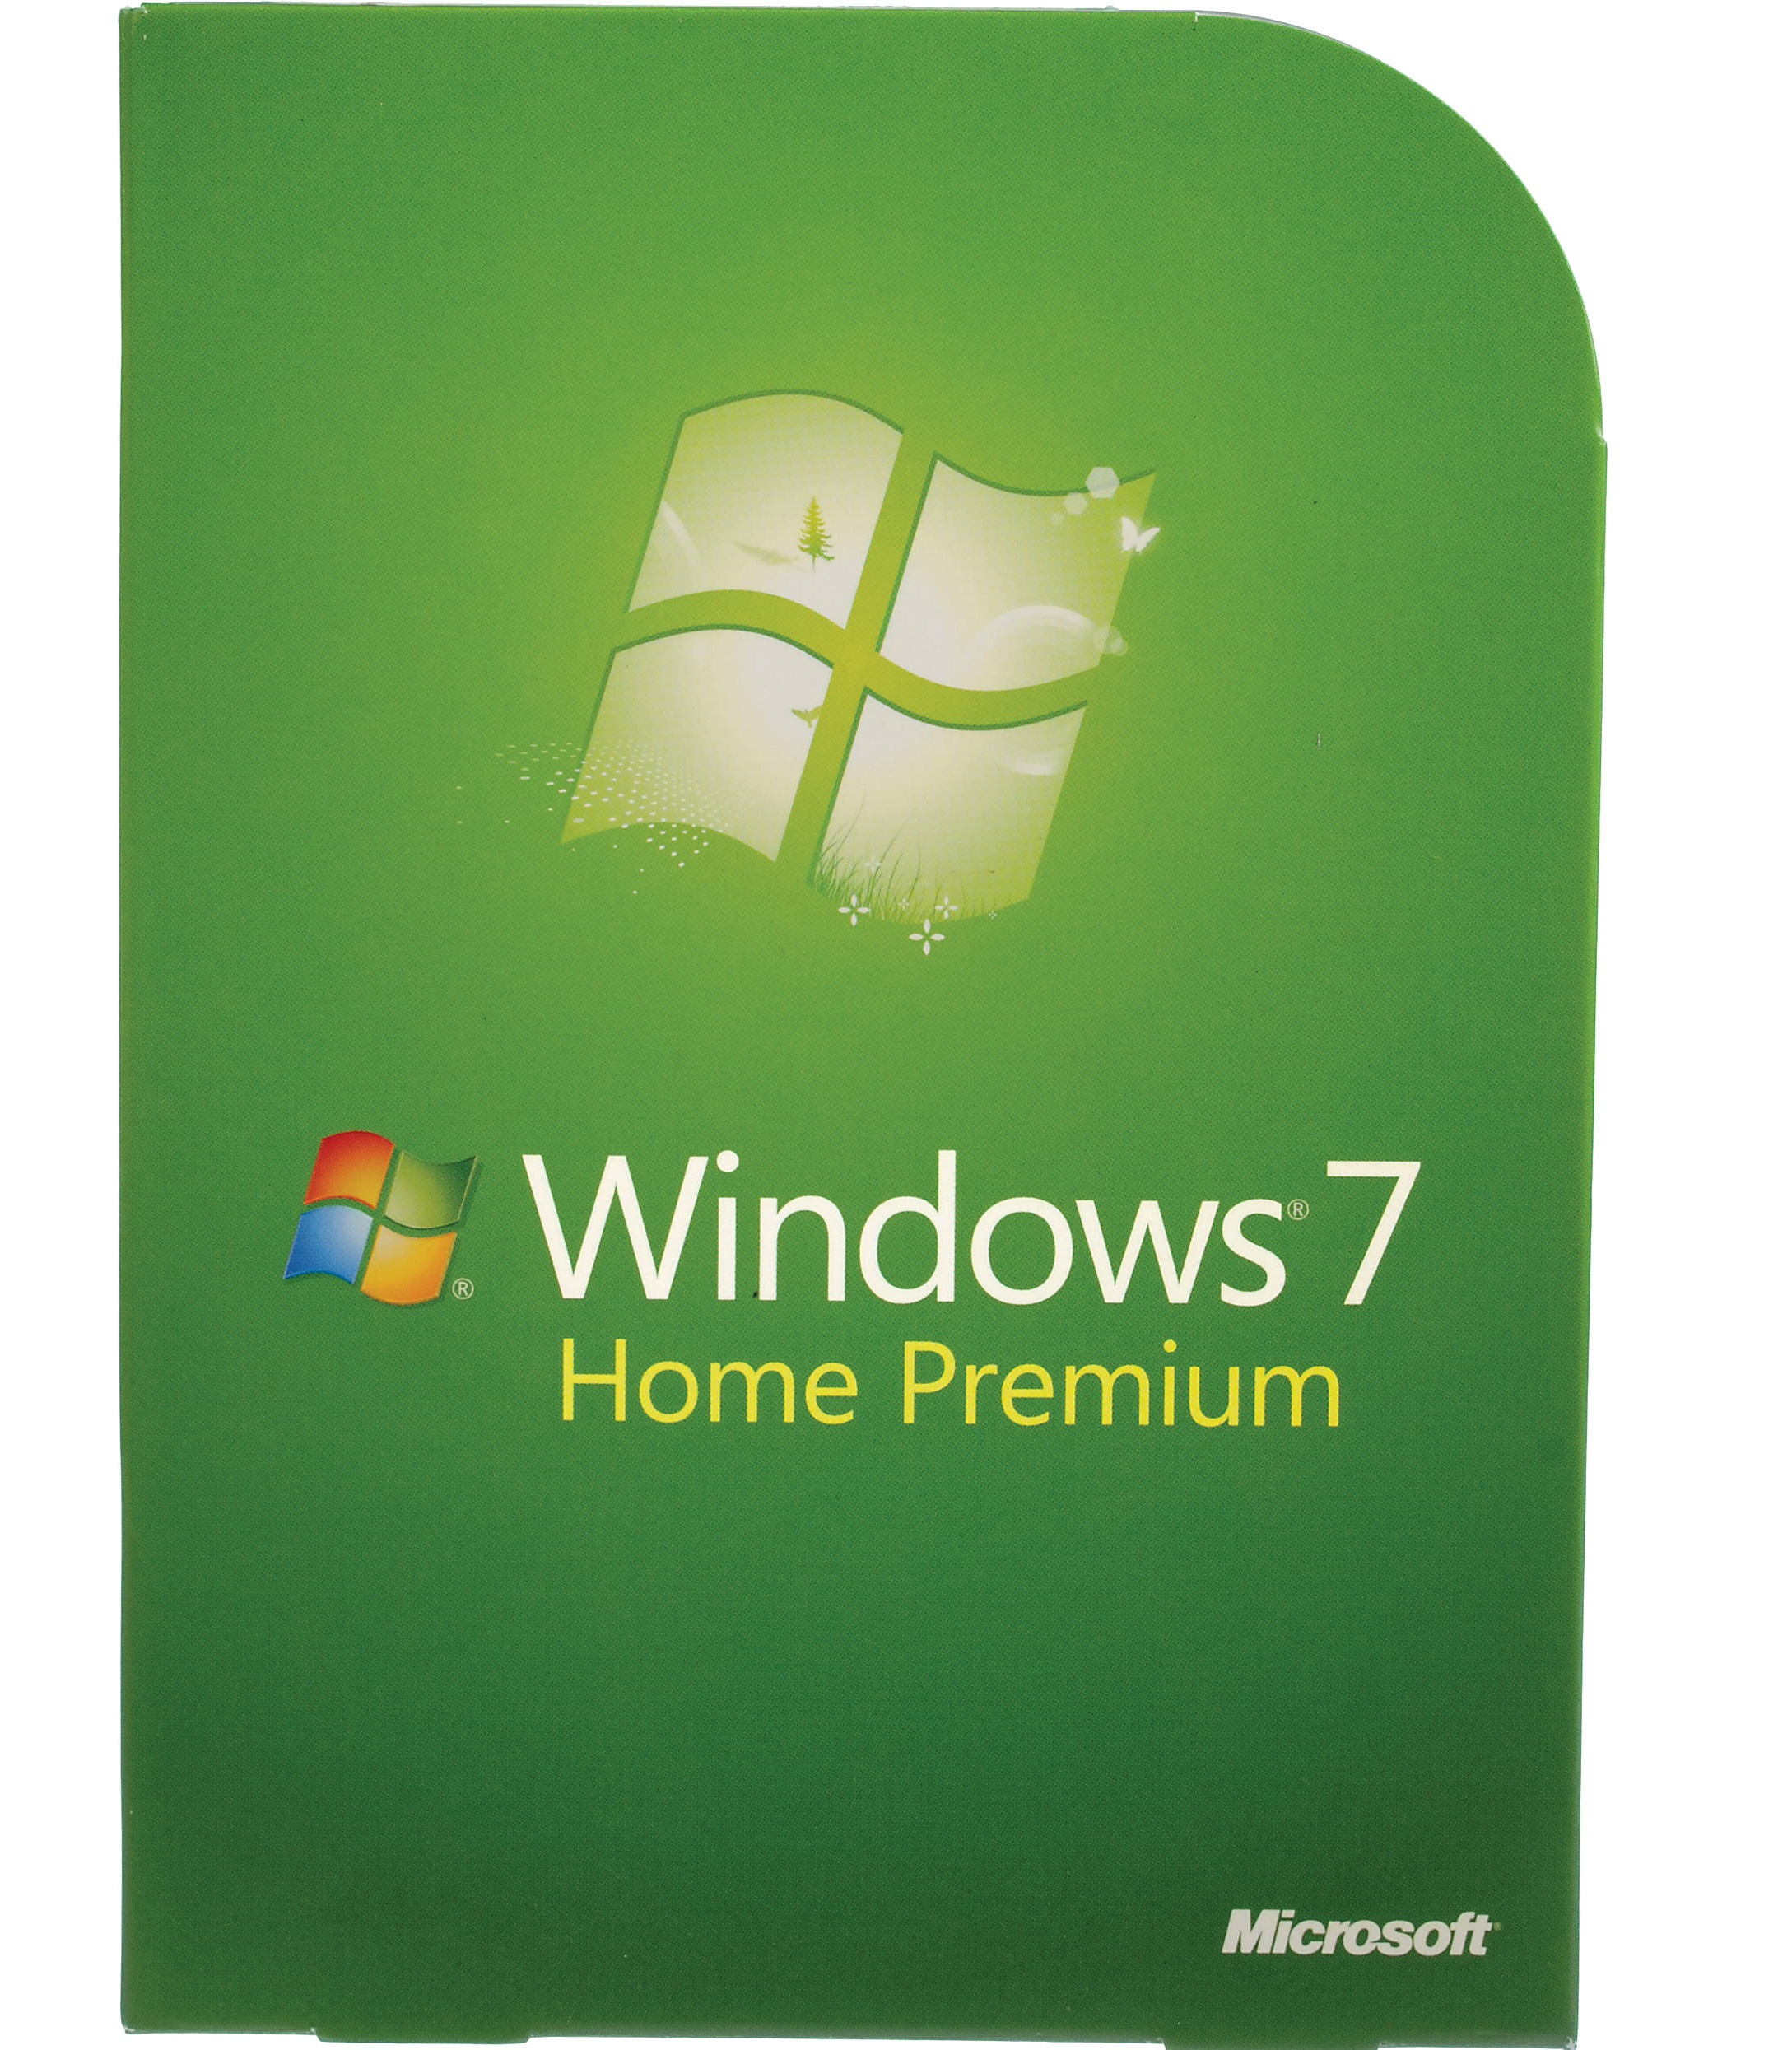 download windows 7 torrents